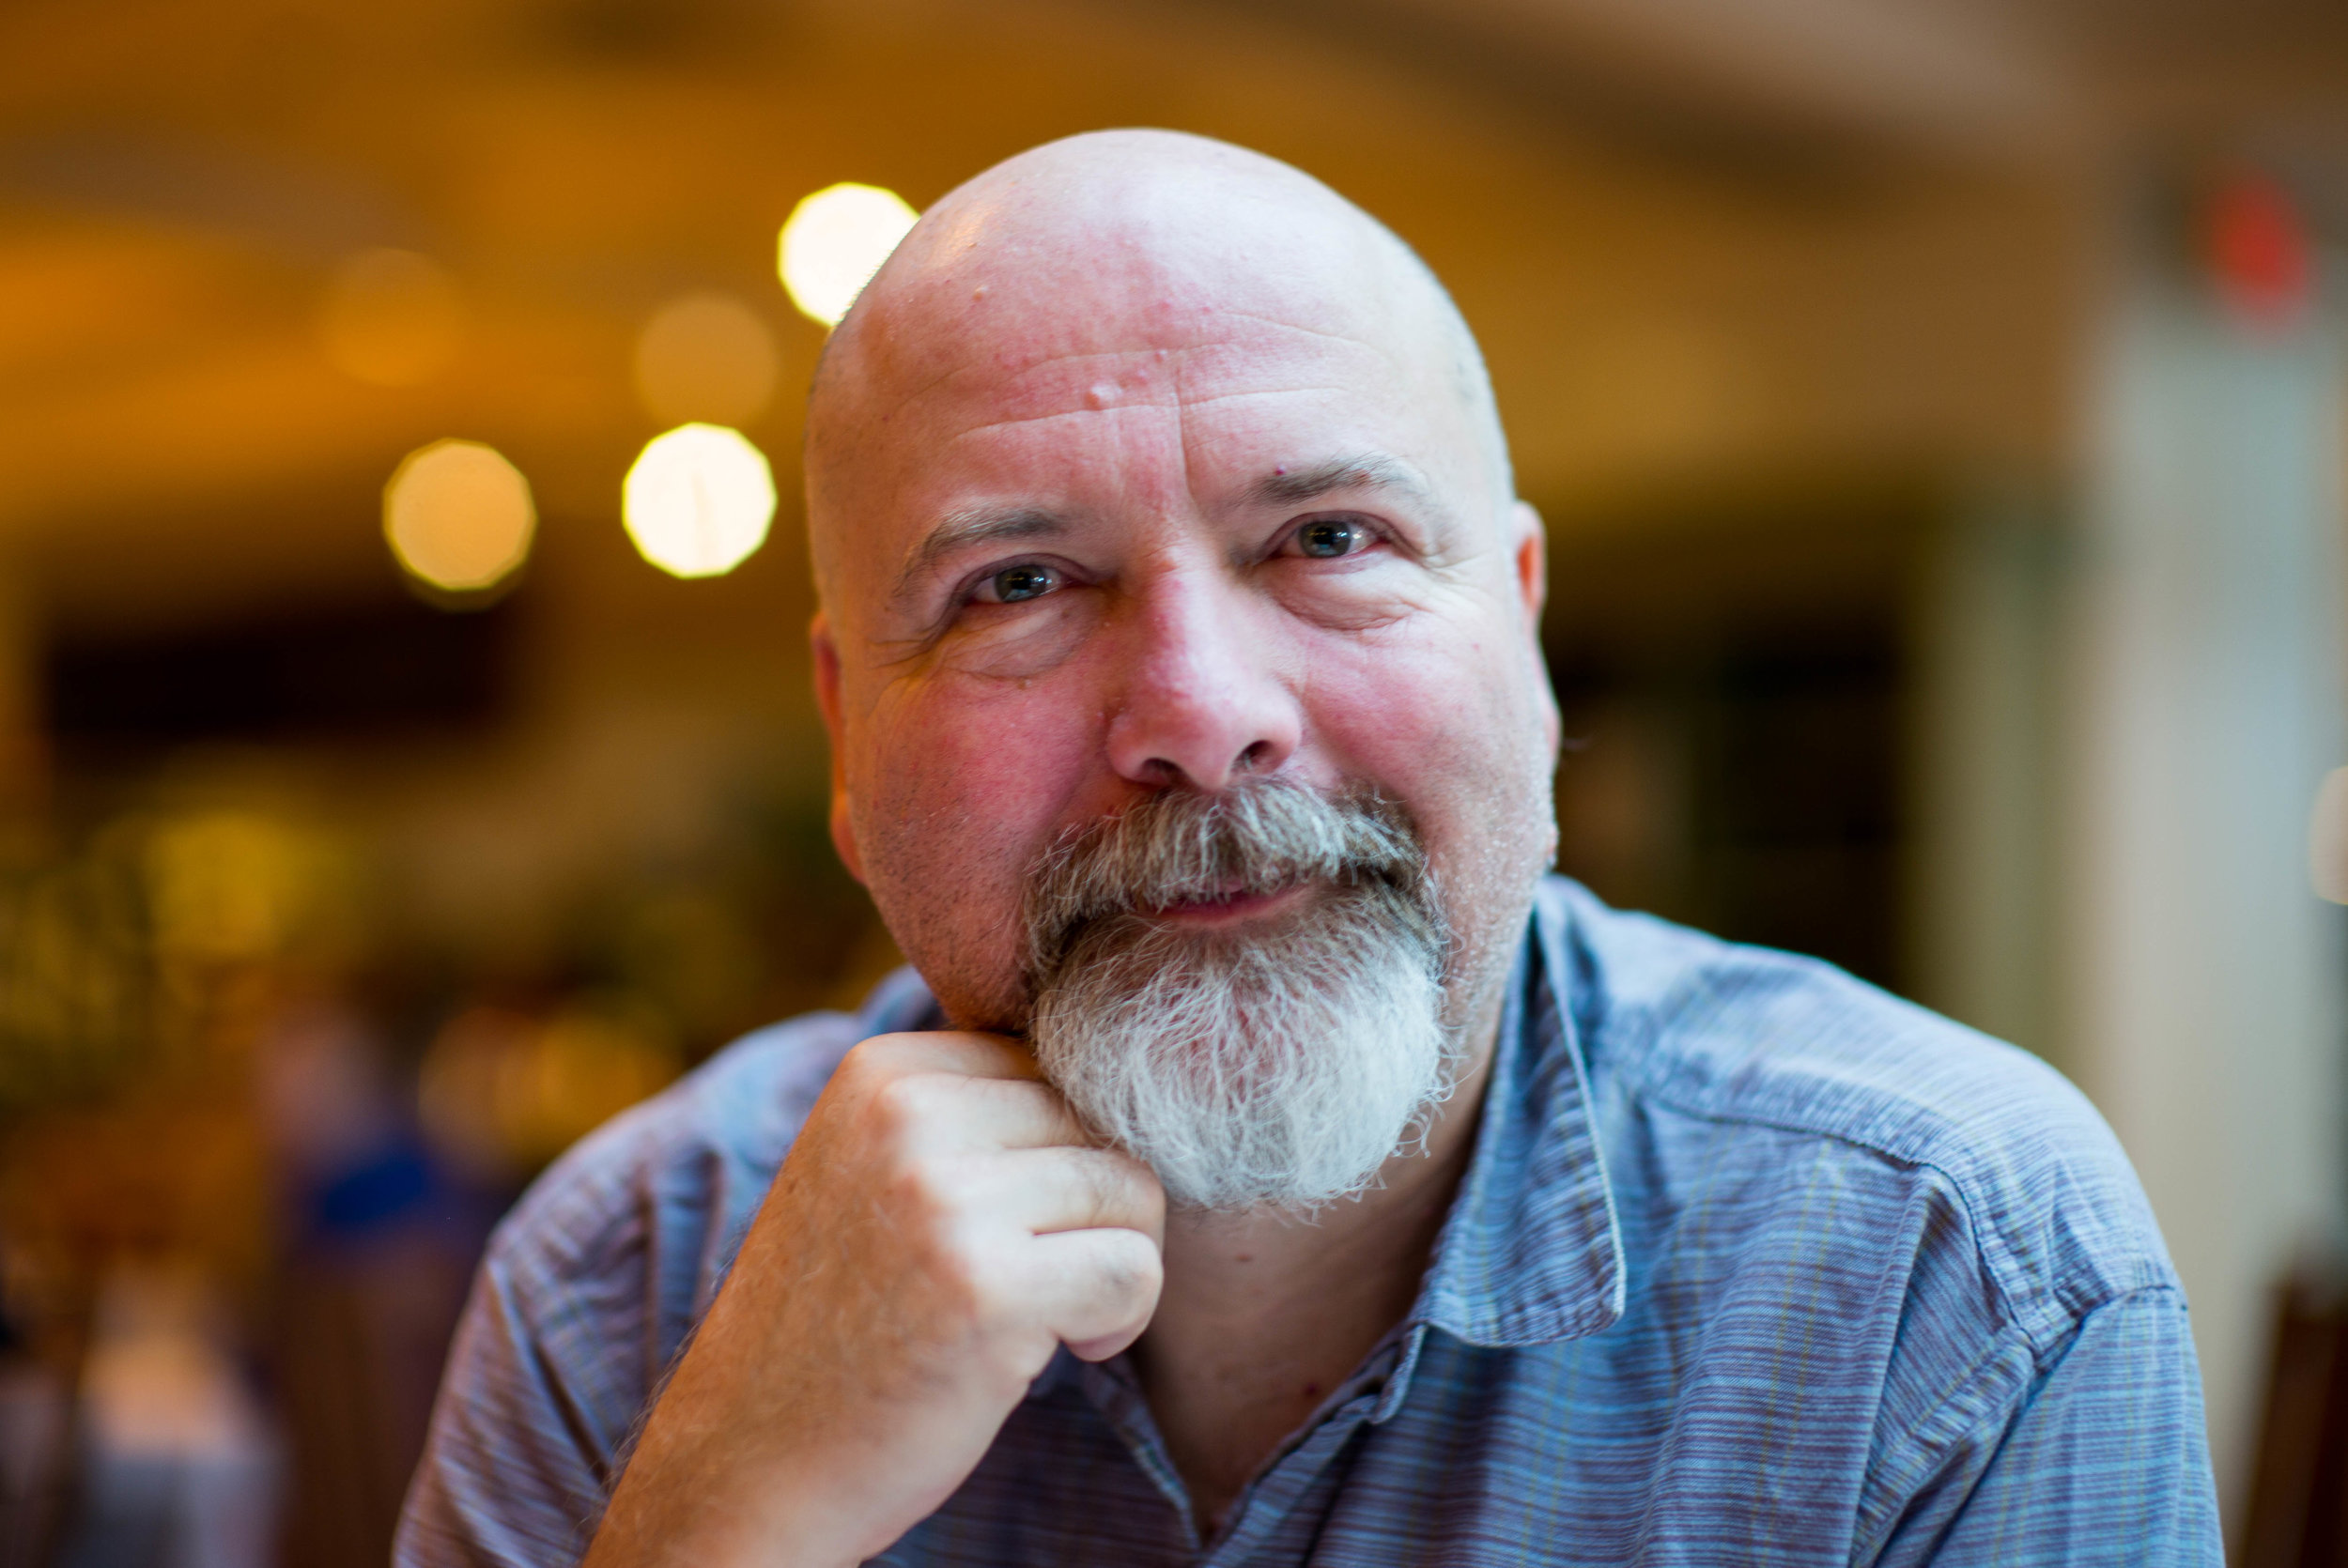 Danny Hillis  Artificial Intelligence. Danny is professor of parallel computing, inventor of mass innovations, and visionary of The Clock of the Long Now.